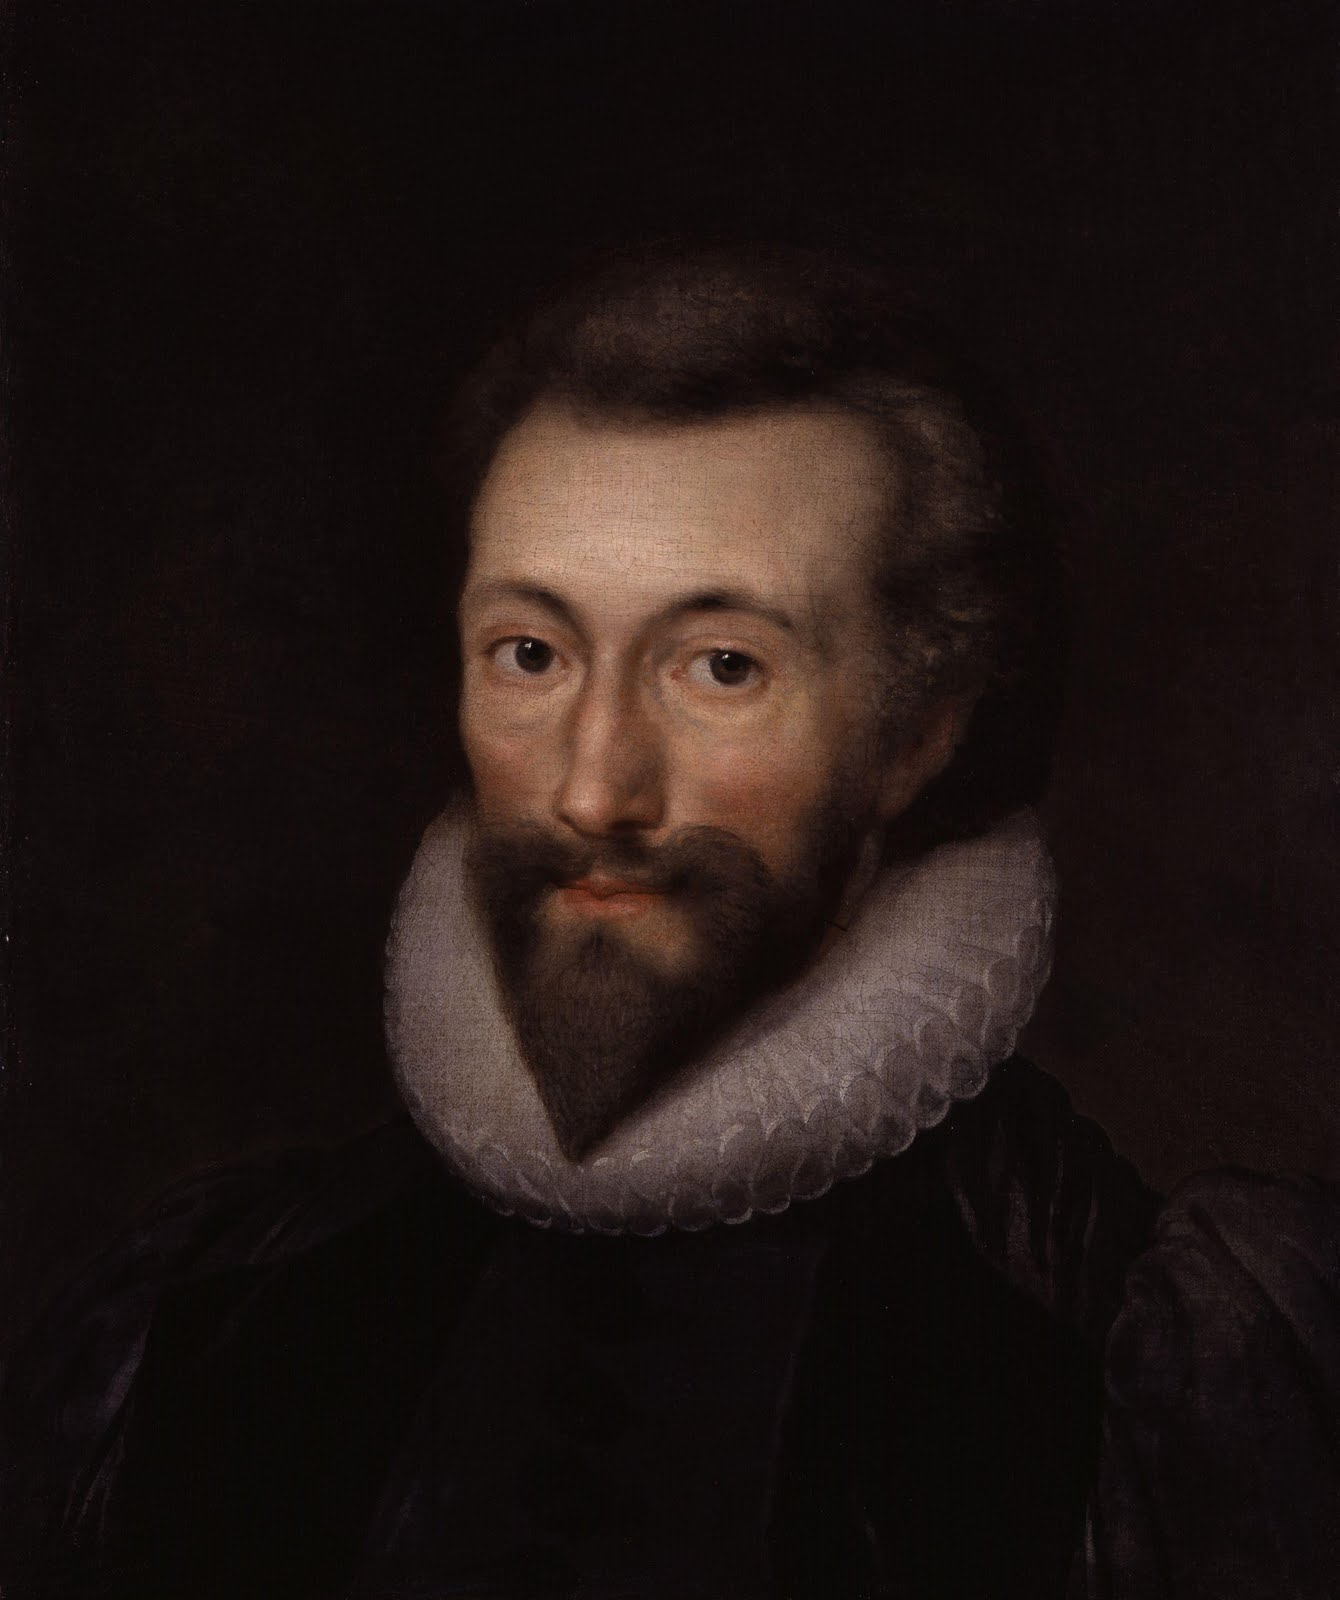 john donne love poetry Poems by john donne john donne [1572-1631] was born in london, england despite his relgious calling (he was dean of st, pauls cathedral in london)his poetry is notable for it eroticism and sometimes cynical worldview.